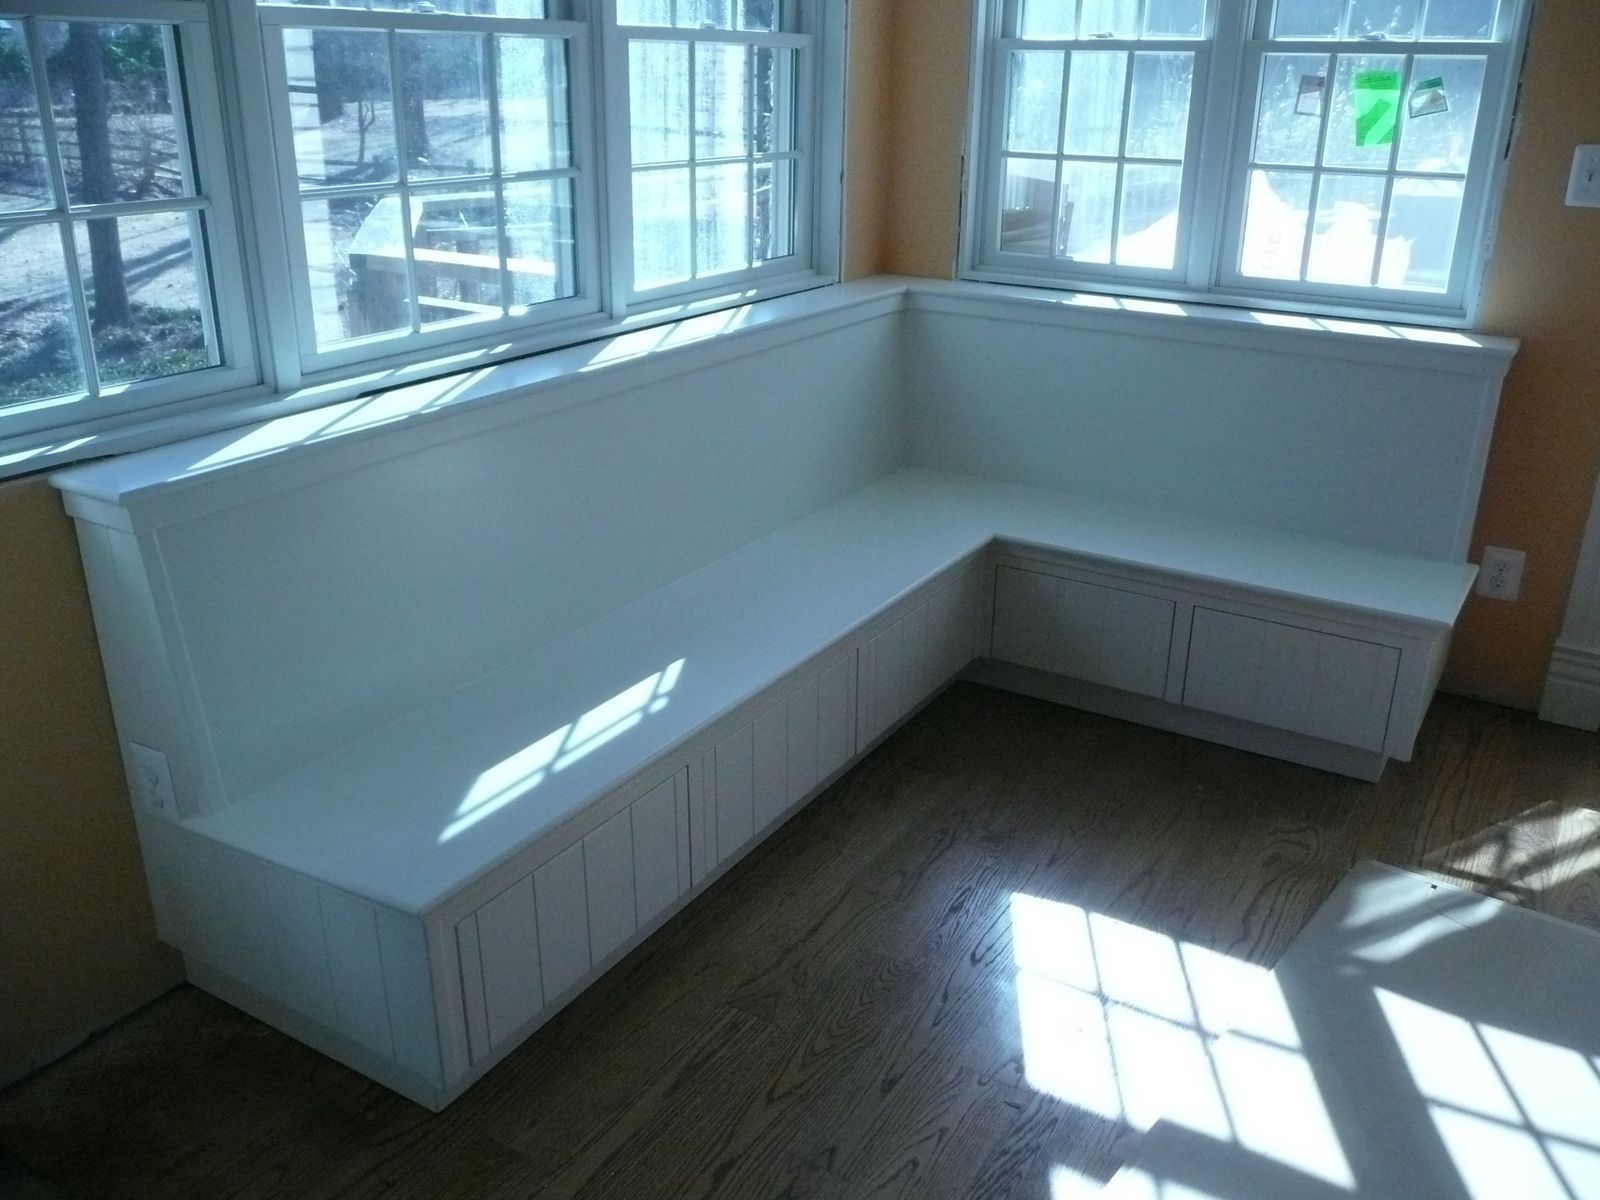 Storage Benches | CustomMade.com